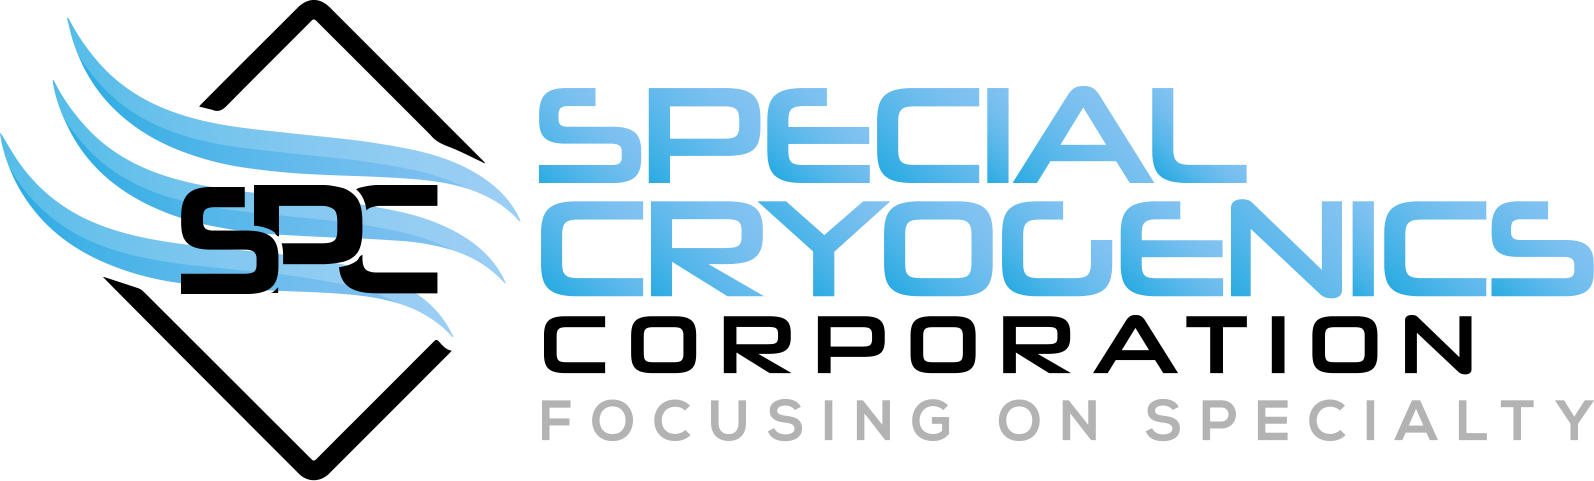 Special Cryogenics Corporation